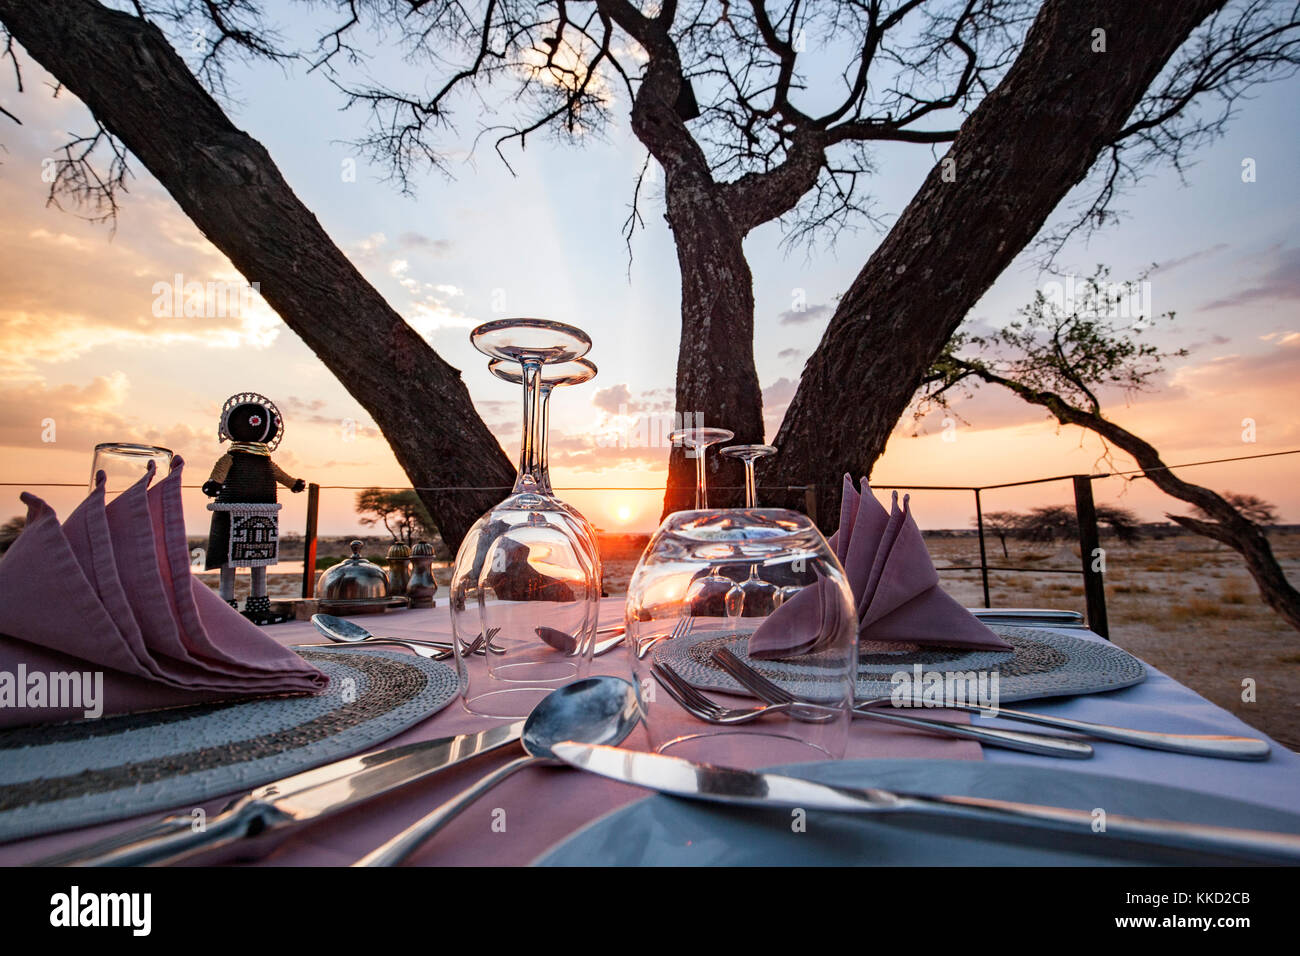 Sunset at Onguma The Fort, Onguma Game Reserve, Namibia, Africa - Stock Image